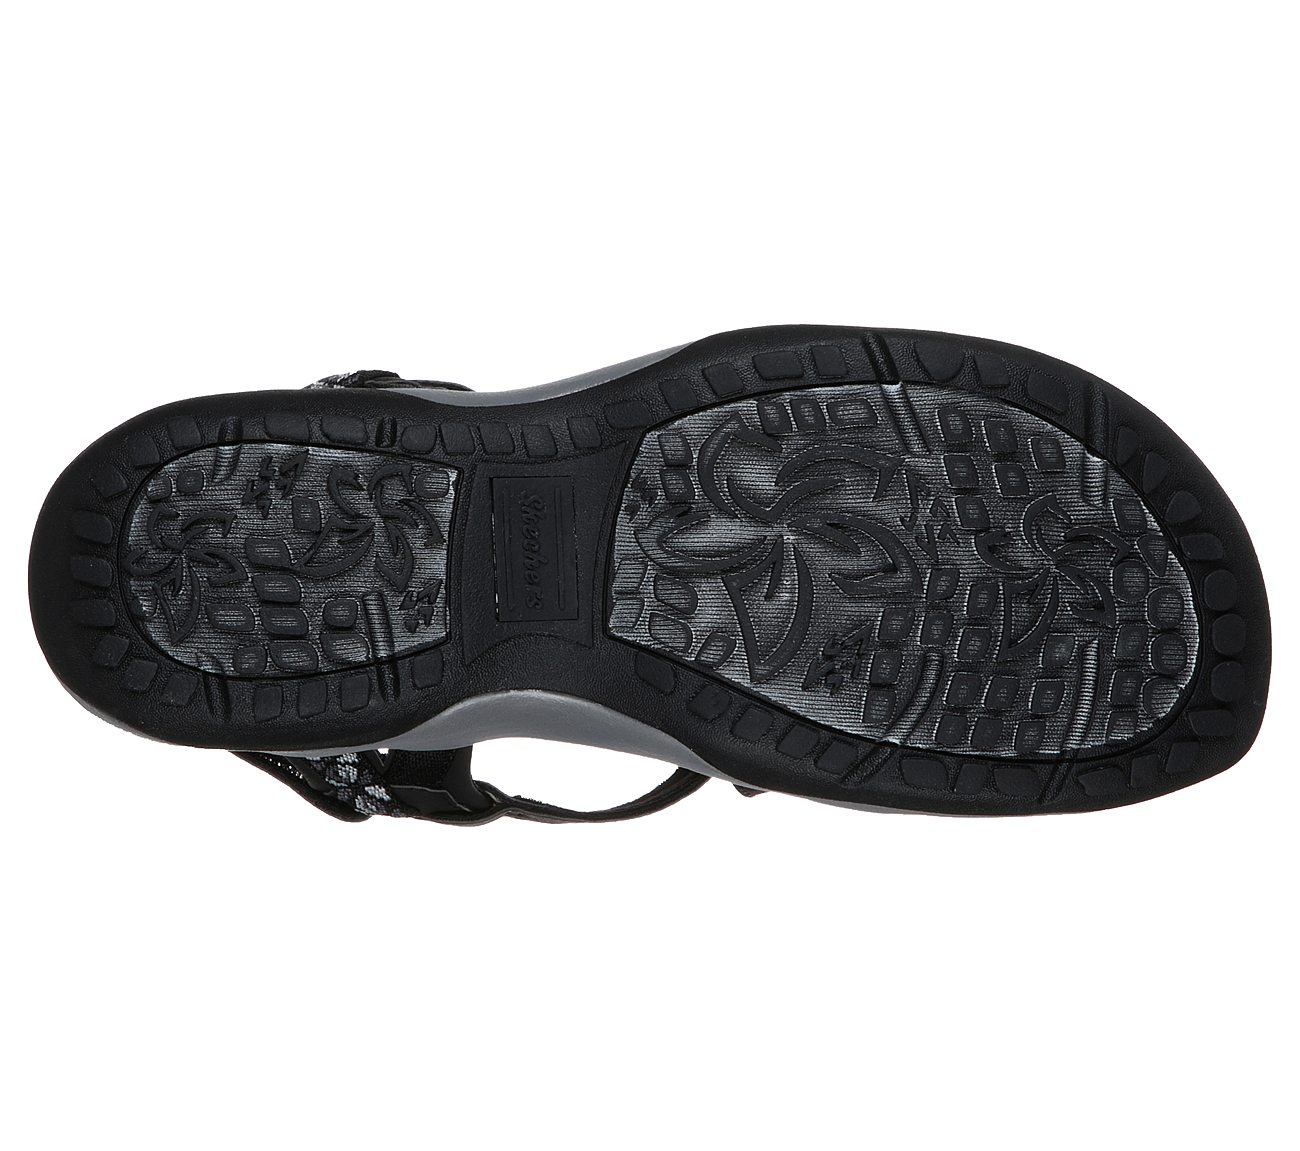 df1a47134e3 Buy SKECHERS Reggae Slim - Vacay Modern Comfort Shoes only  55.00